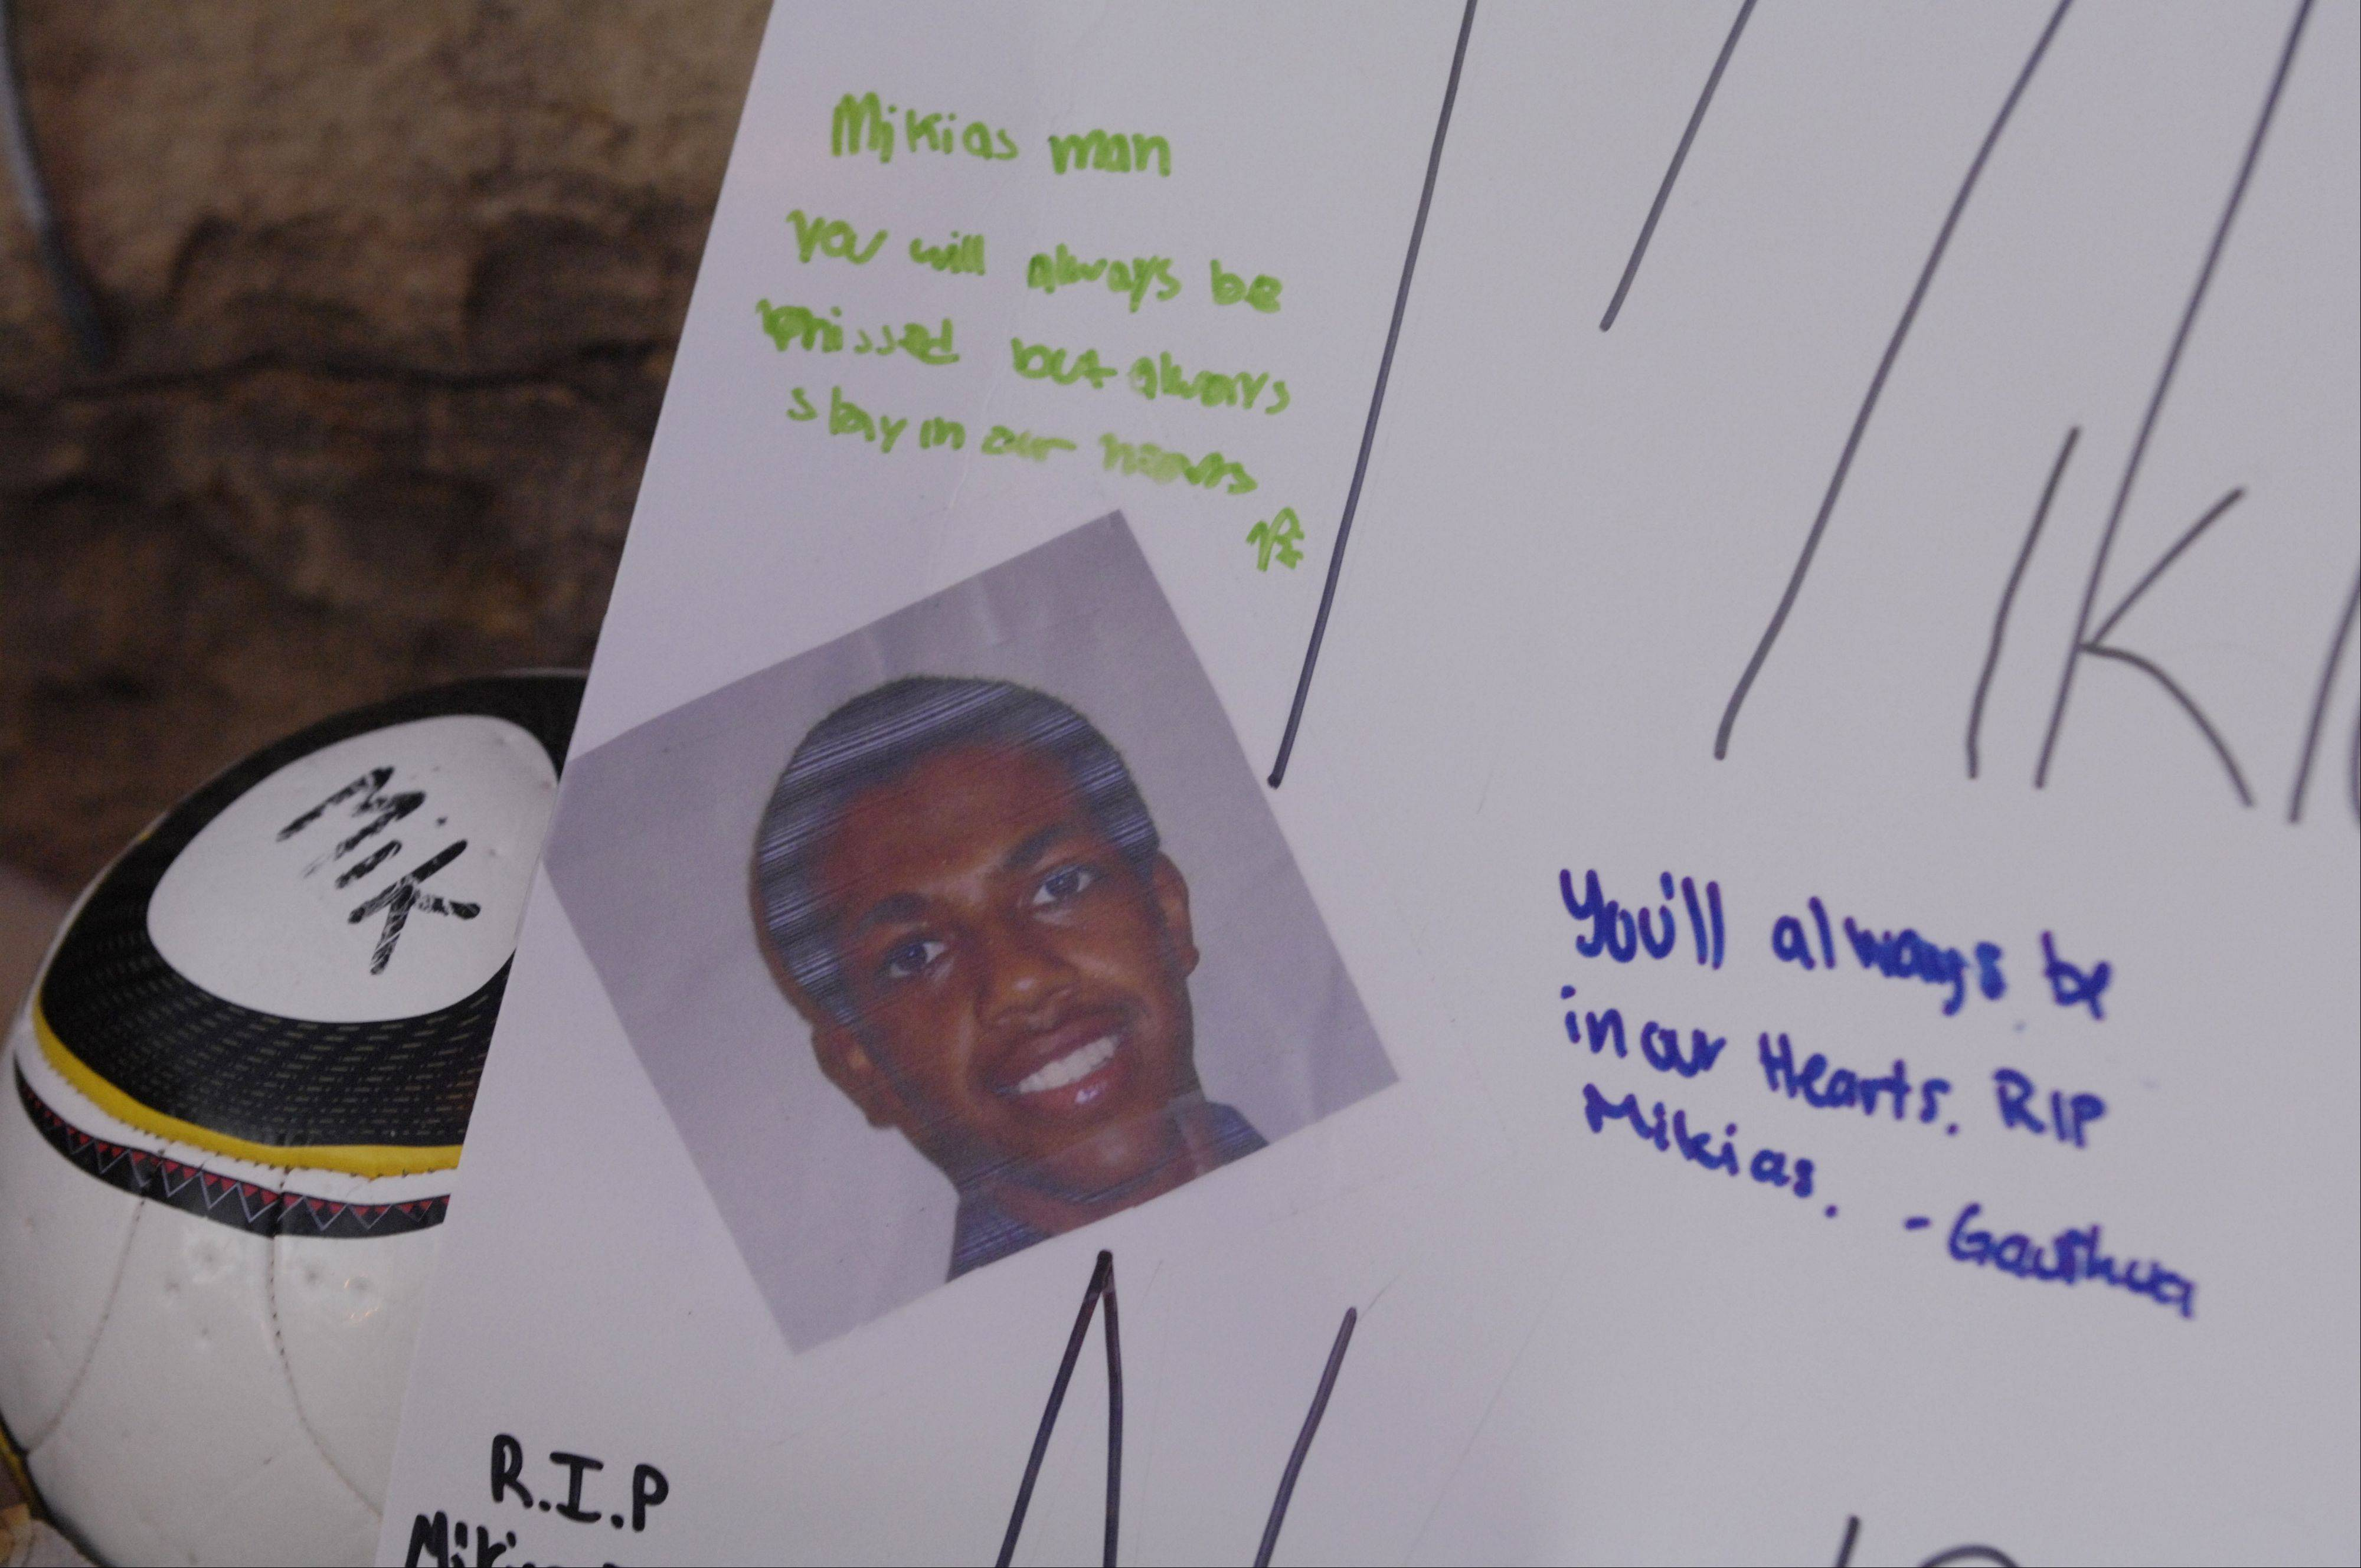 Mourners left messages on a roadside memorial in honor of Mikias Tibebu who was killed by a hit-and-run driver over the weekend in Schaumburg.